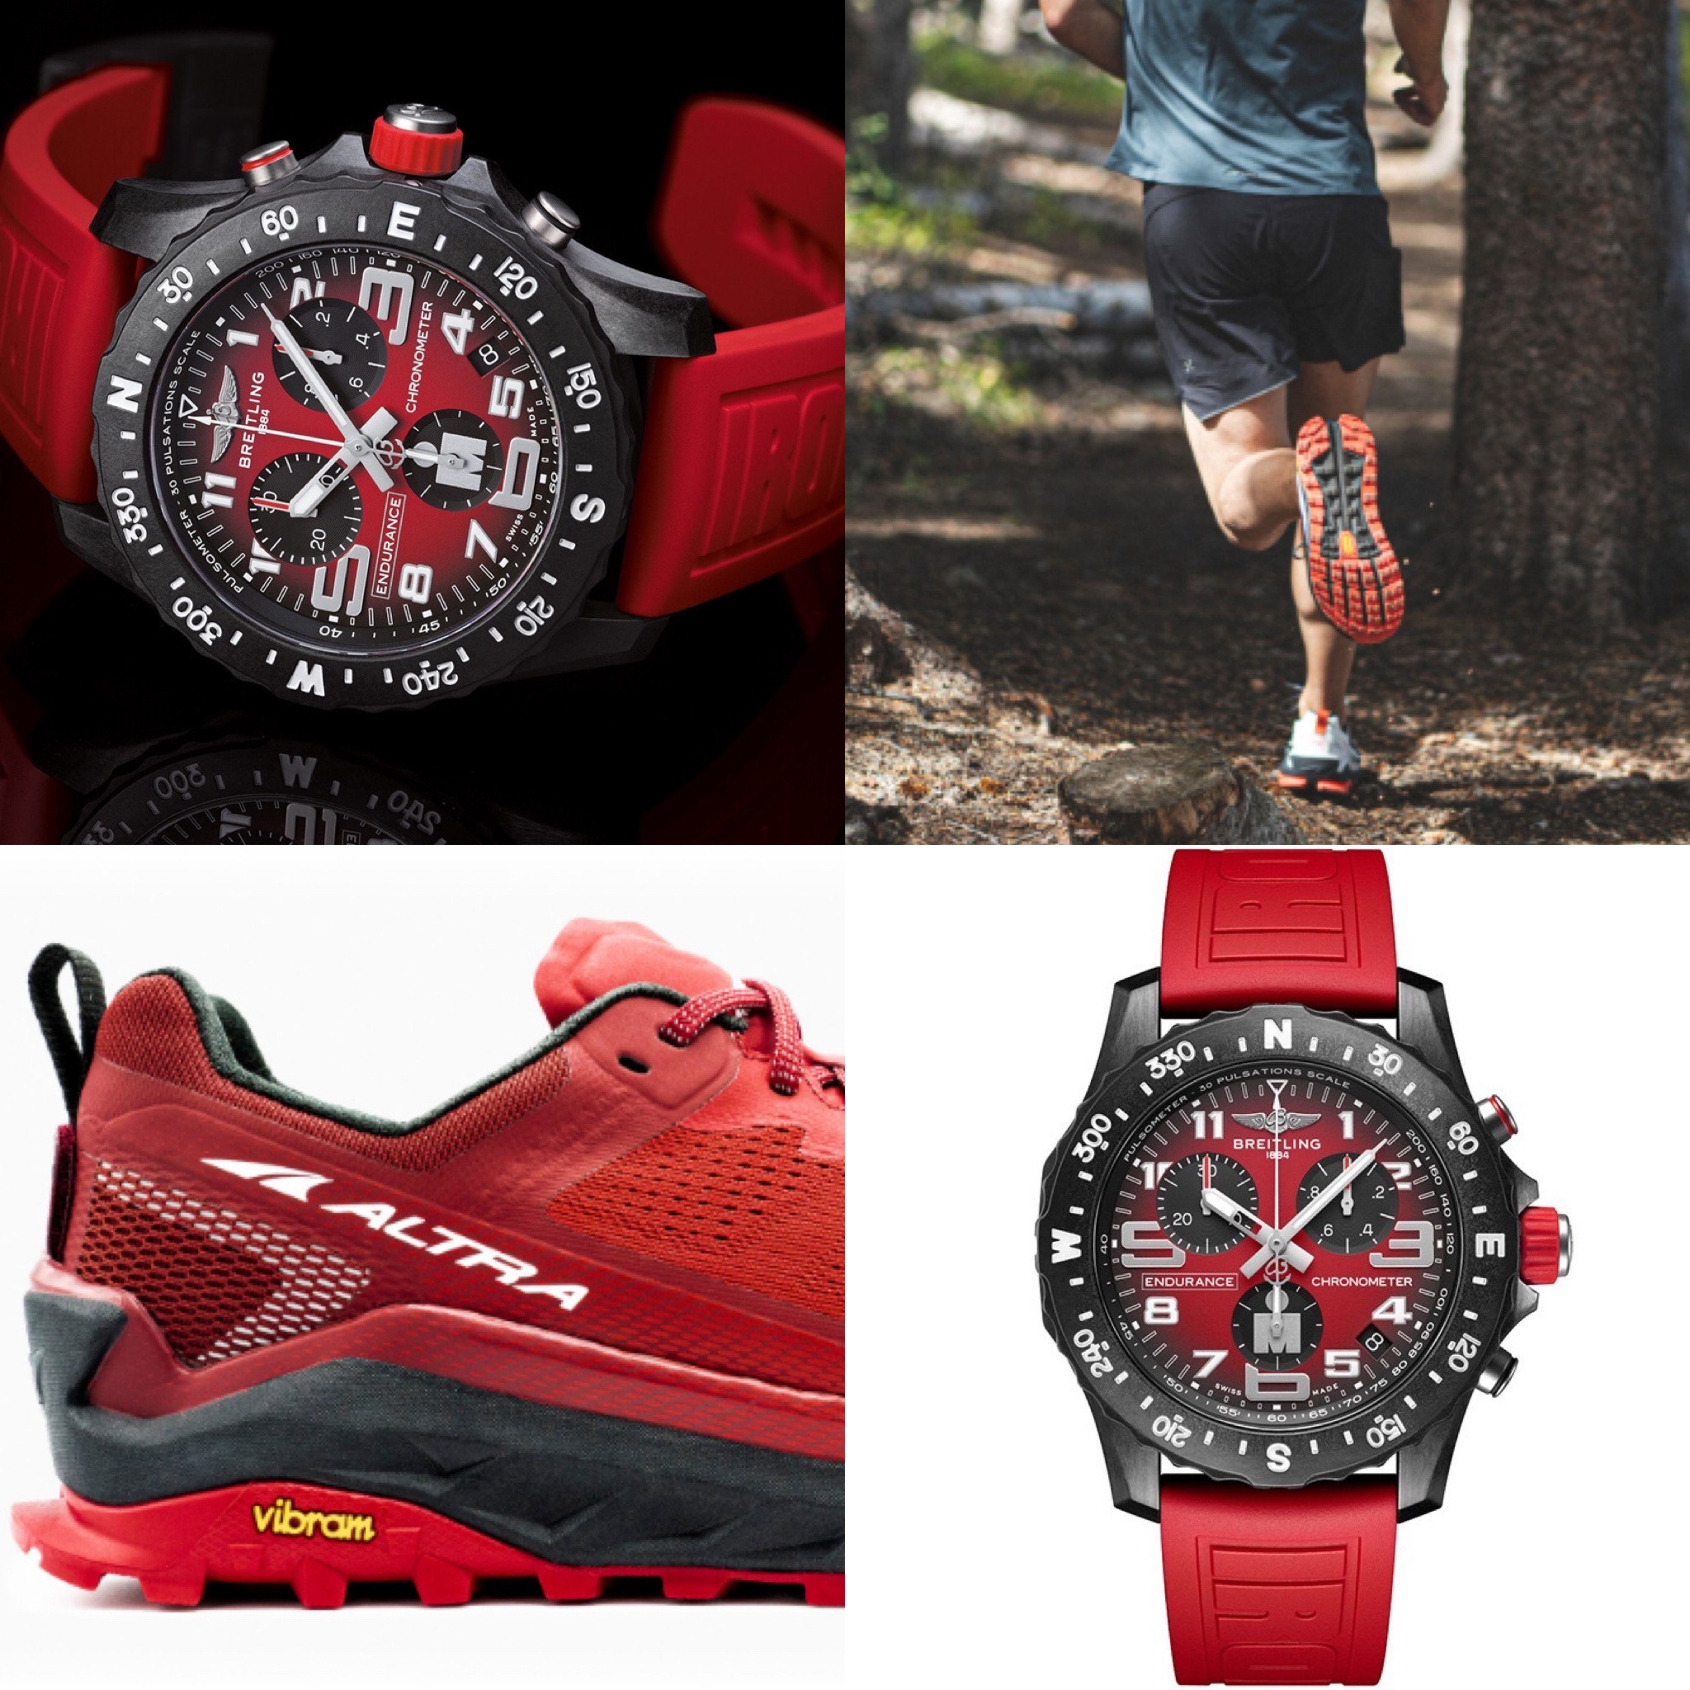 #Kixntix: Hit the trails with the new Breitling Endurance Pro Ironman